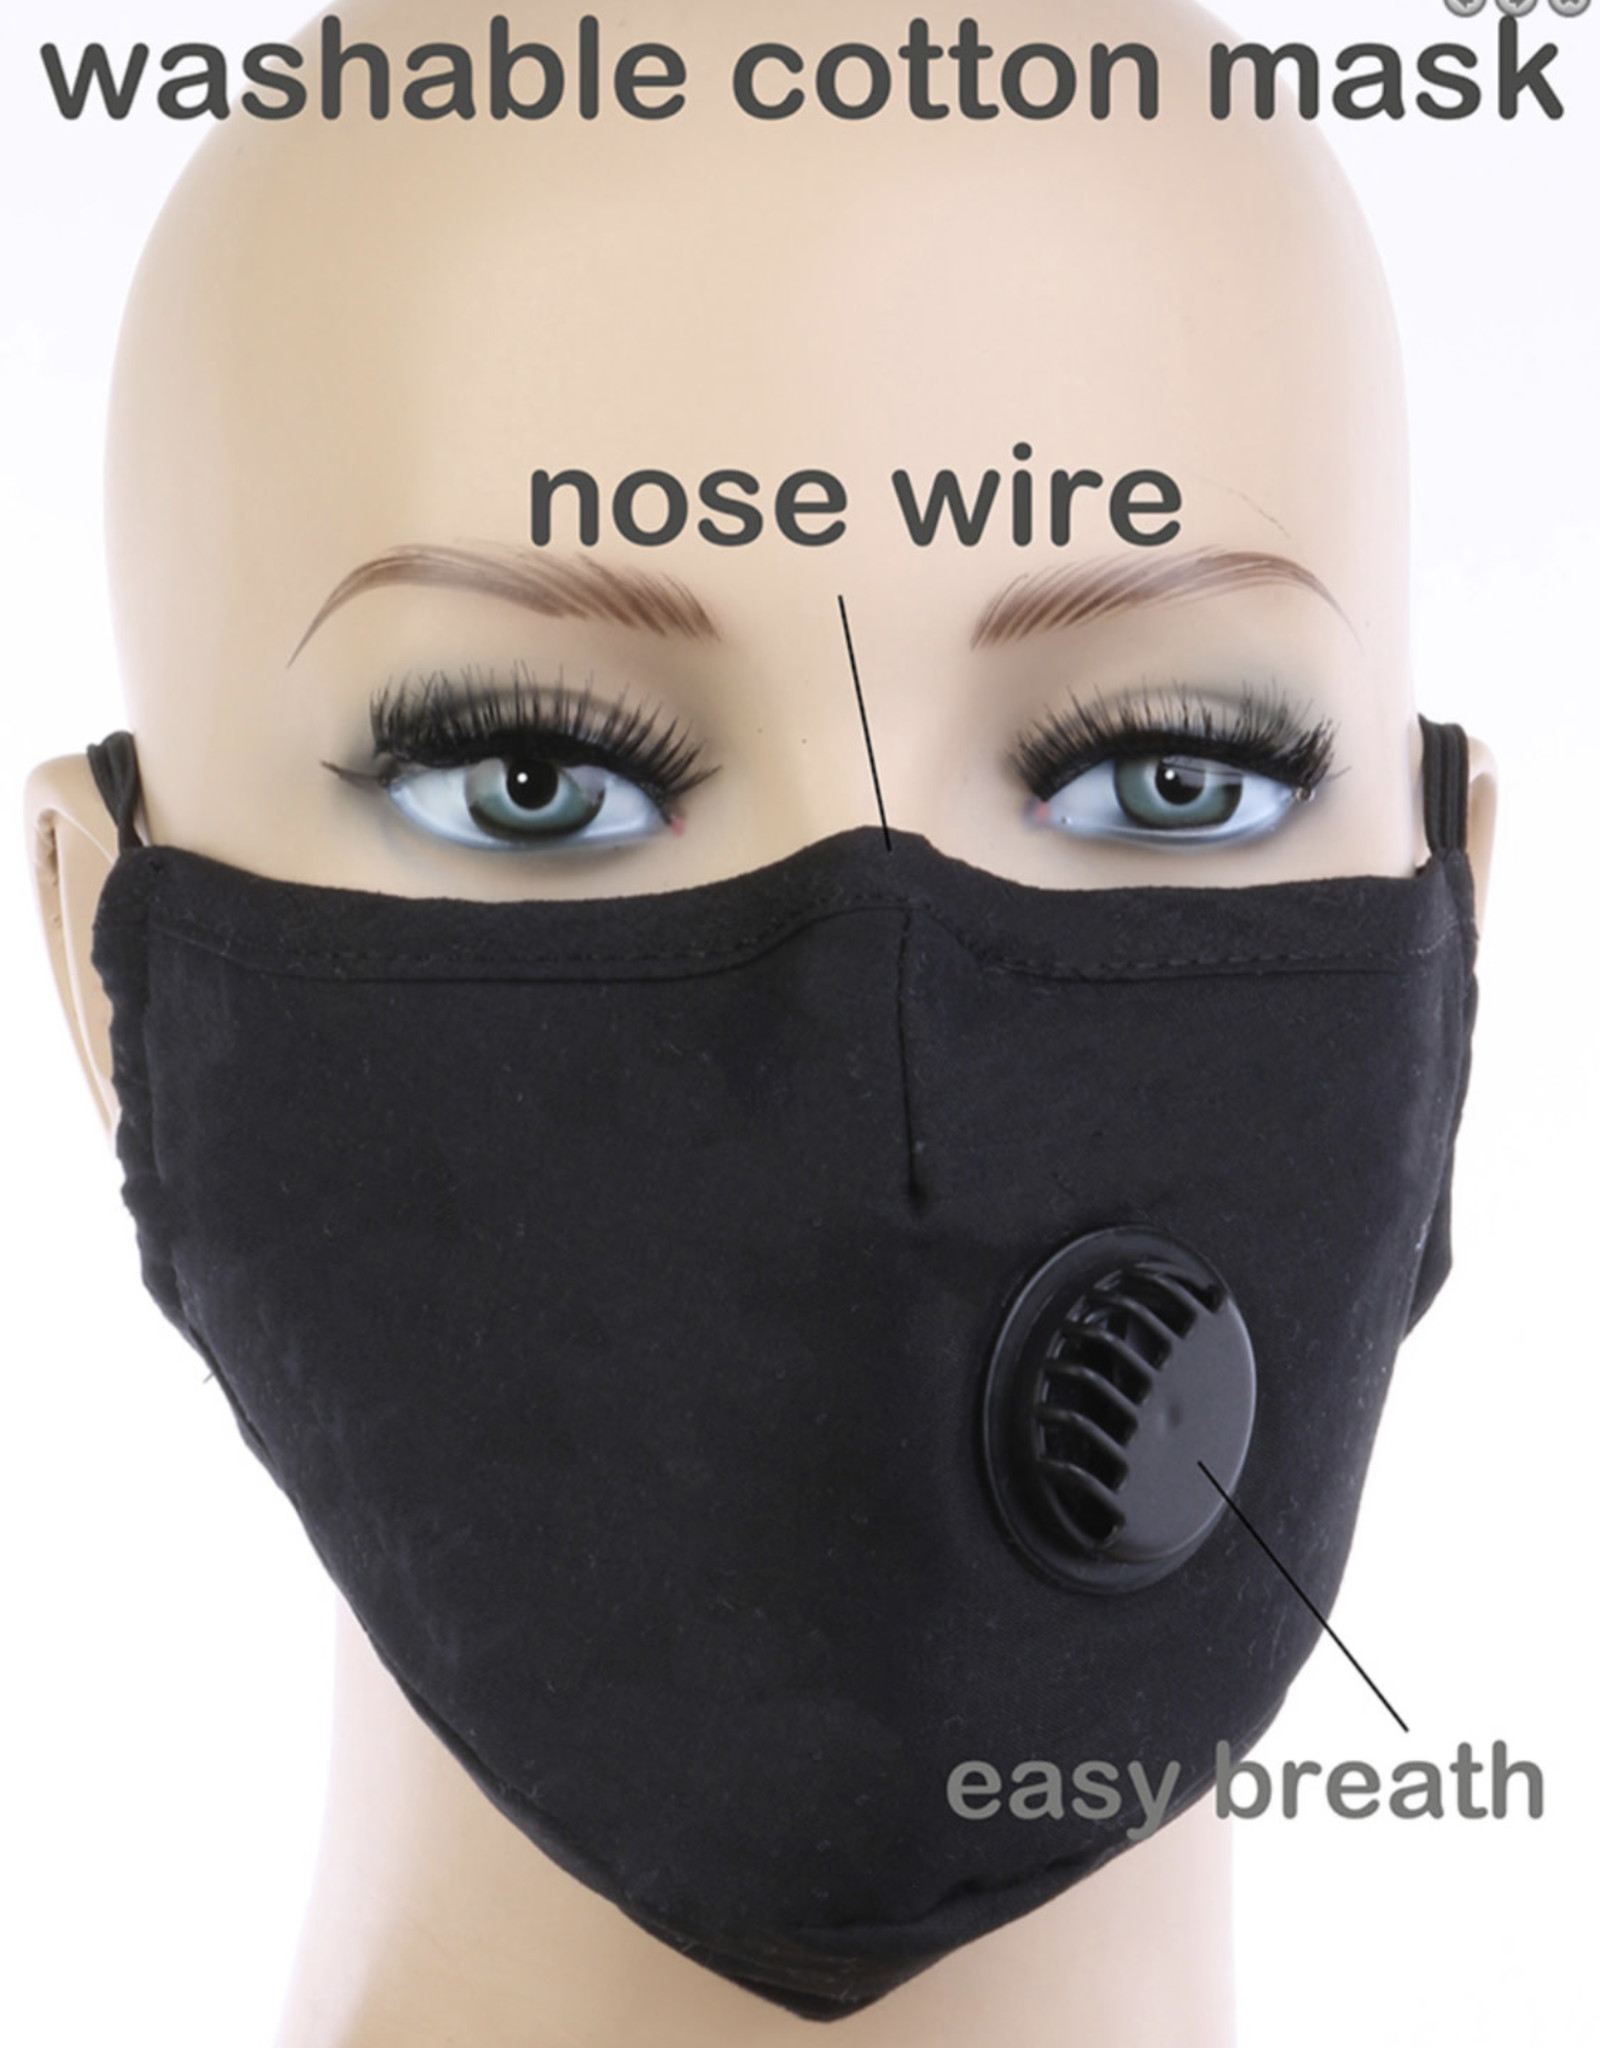 FACE MASK COTTON EZ BREATHE RESPIRATOR W/ FILTER POCKET BLACK W BLACK VALVE